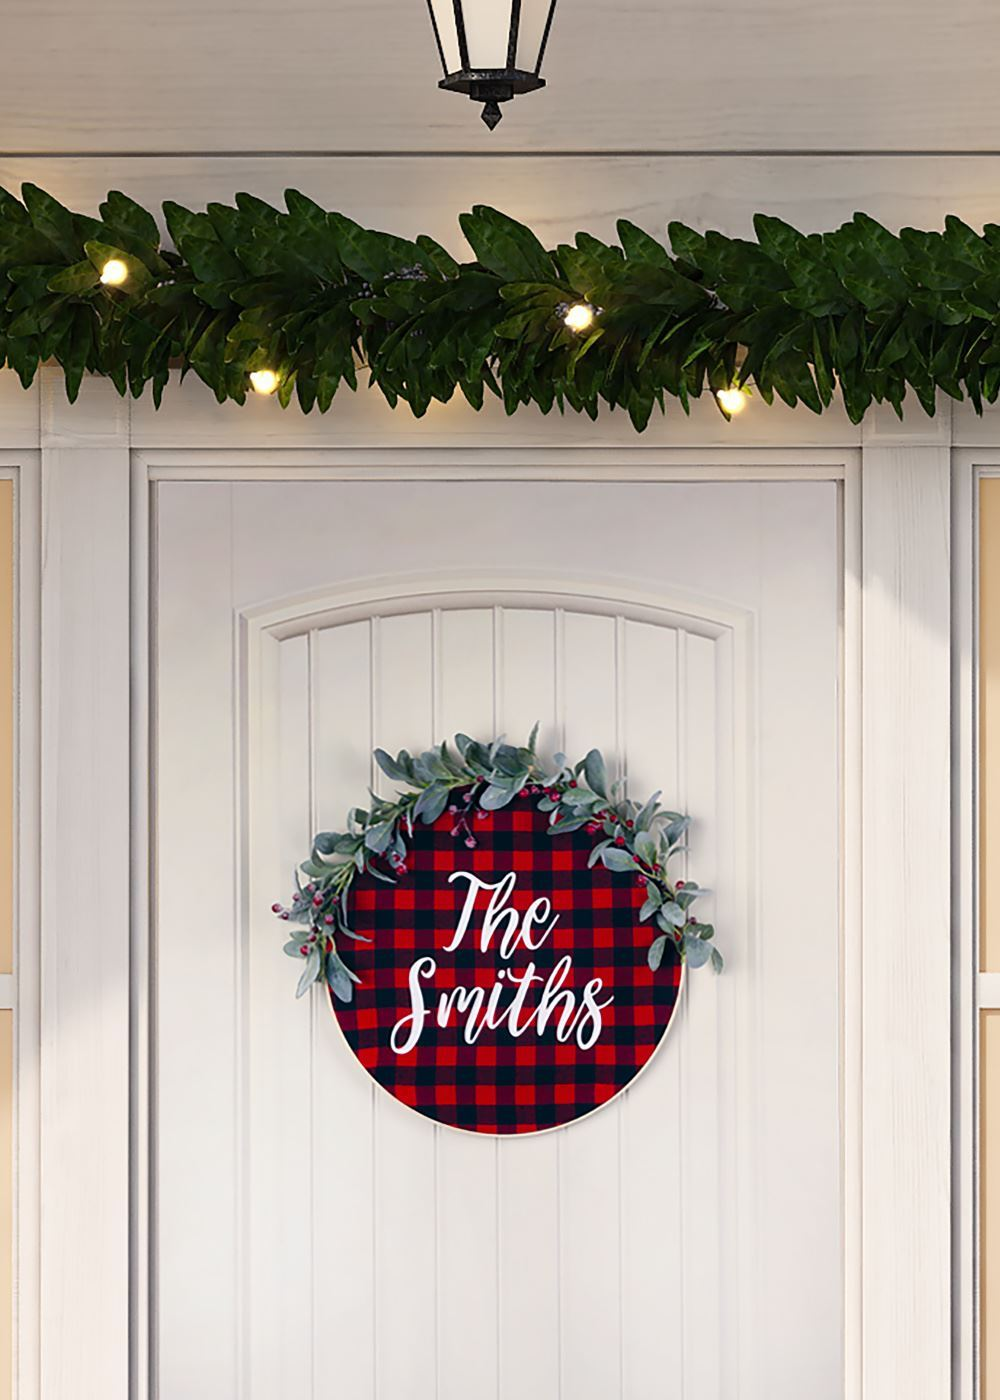 Aleene's Personalized Holiday Embroidery Hoop Wreath